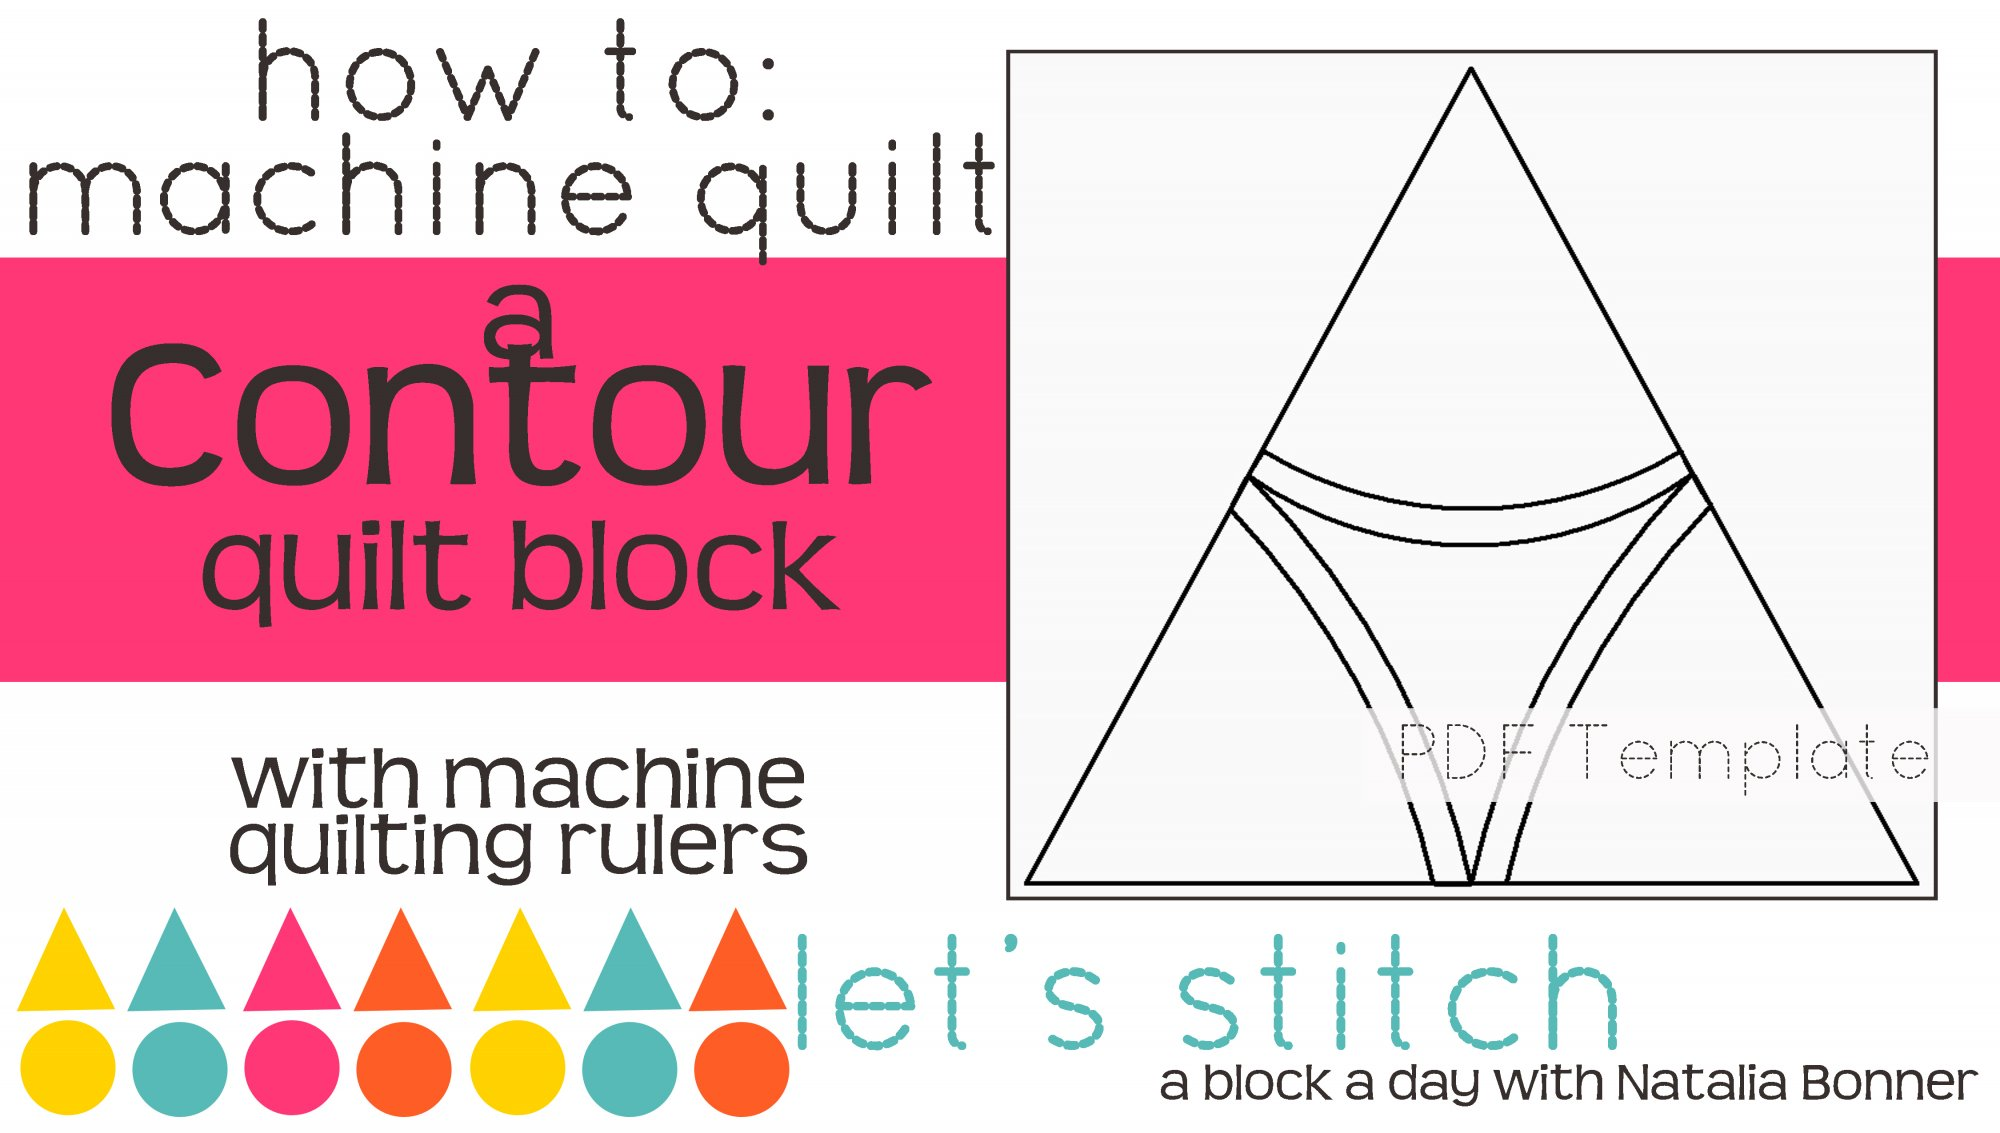 Let's Stitch - A Block a Day With Natalia Bonner - PDF - Contour